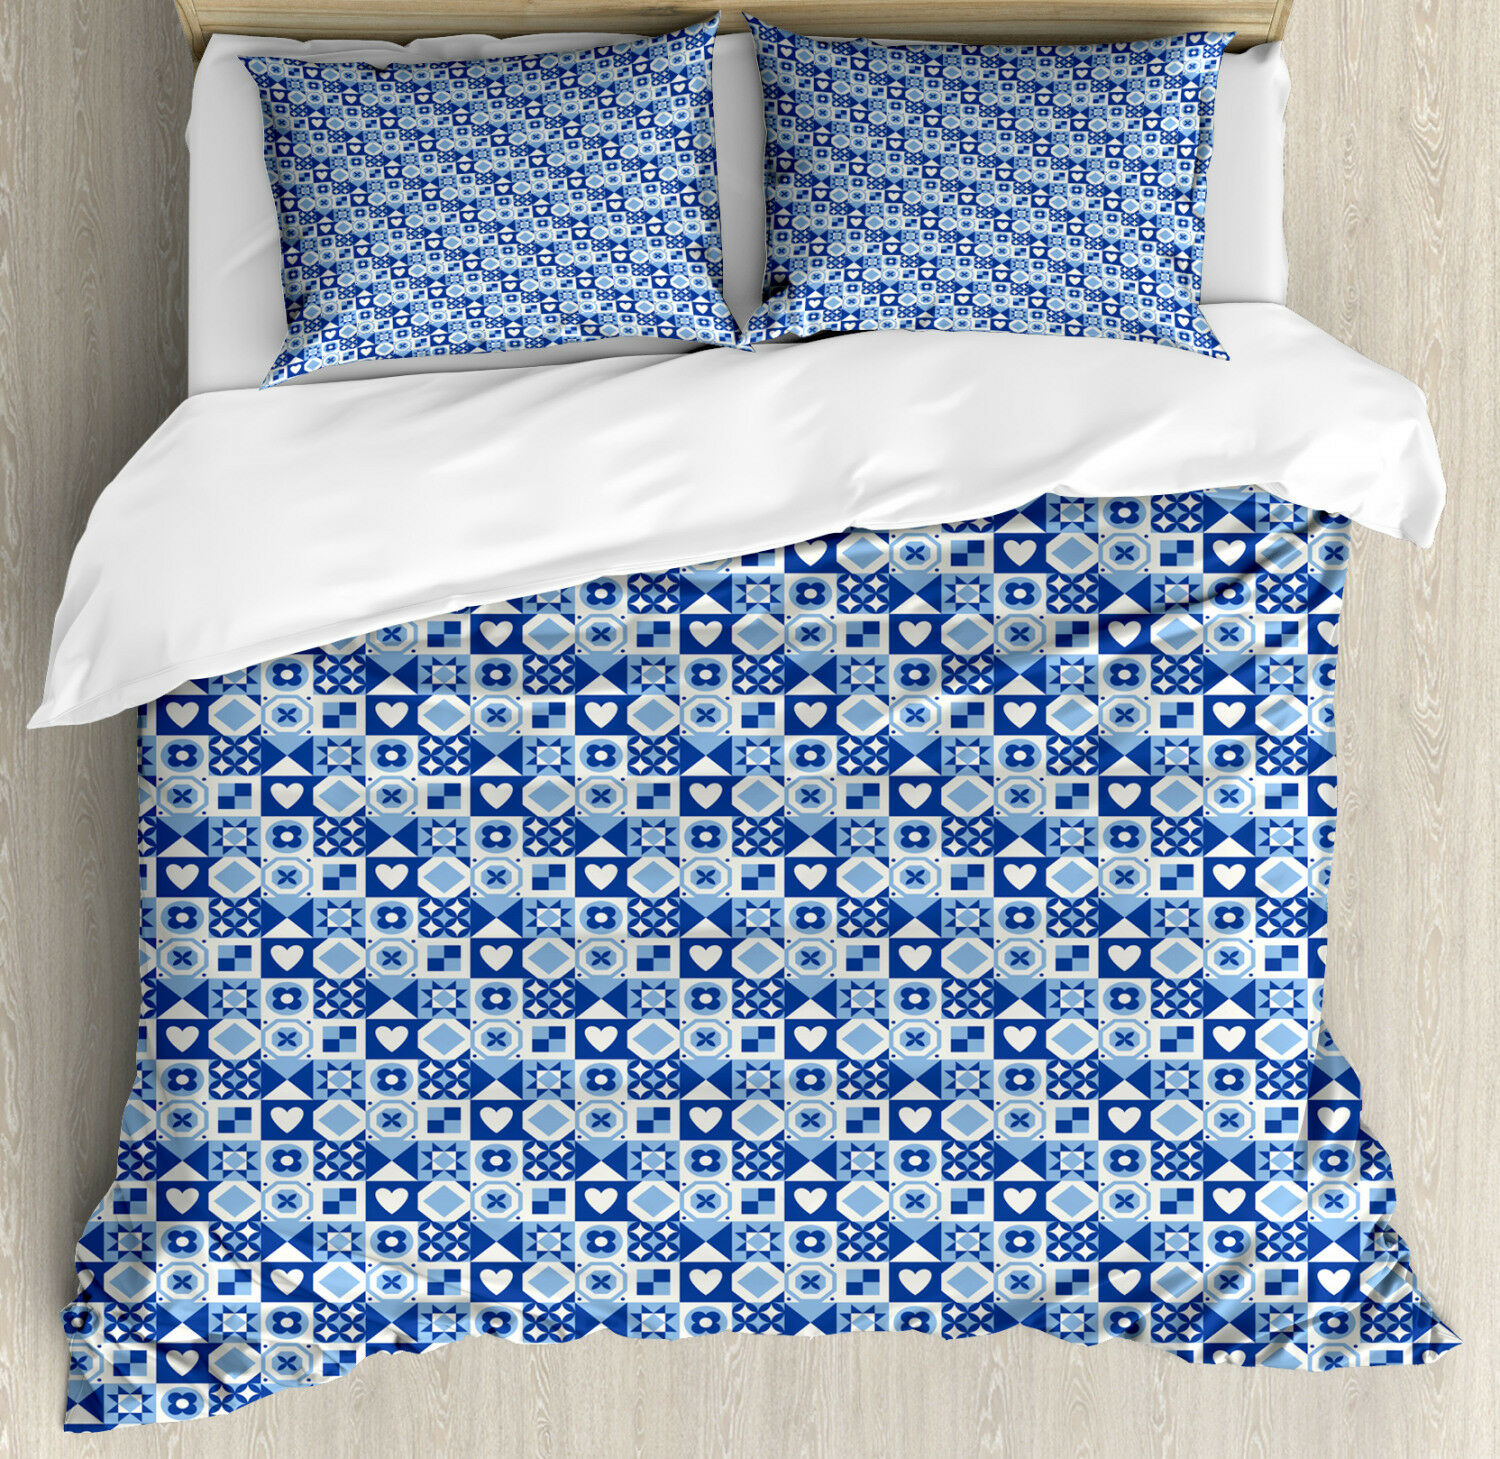 Navy bluee Duvet Cover Set with Pillow Shams Abstract Grid Squares Print